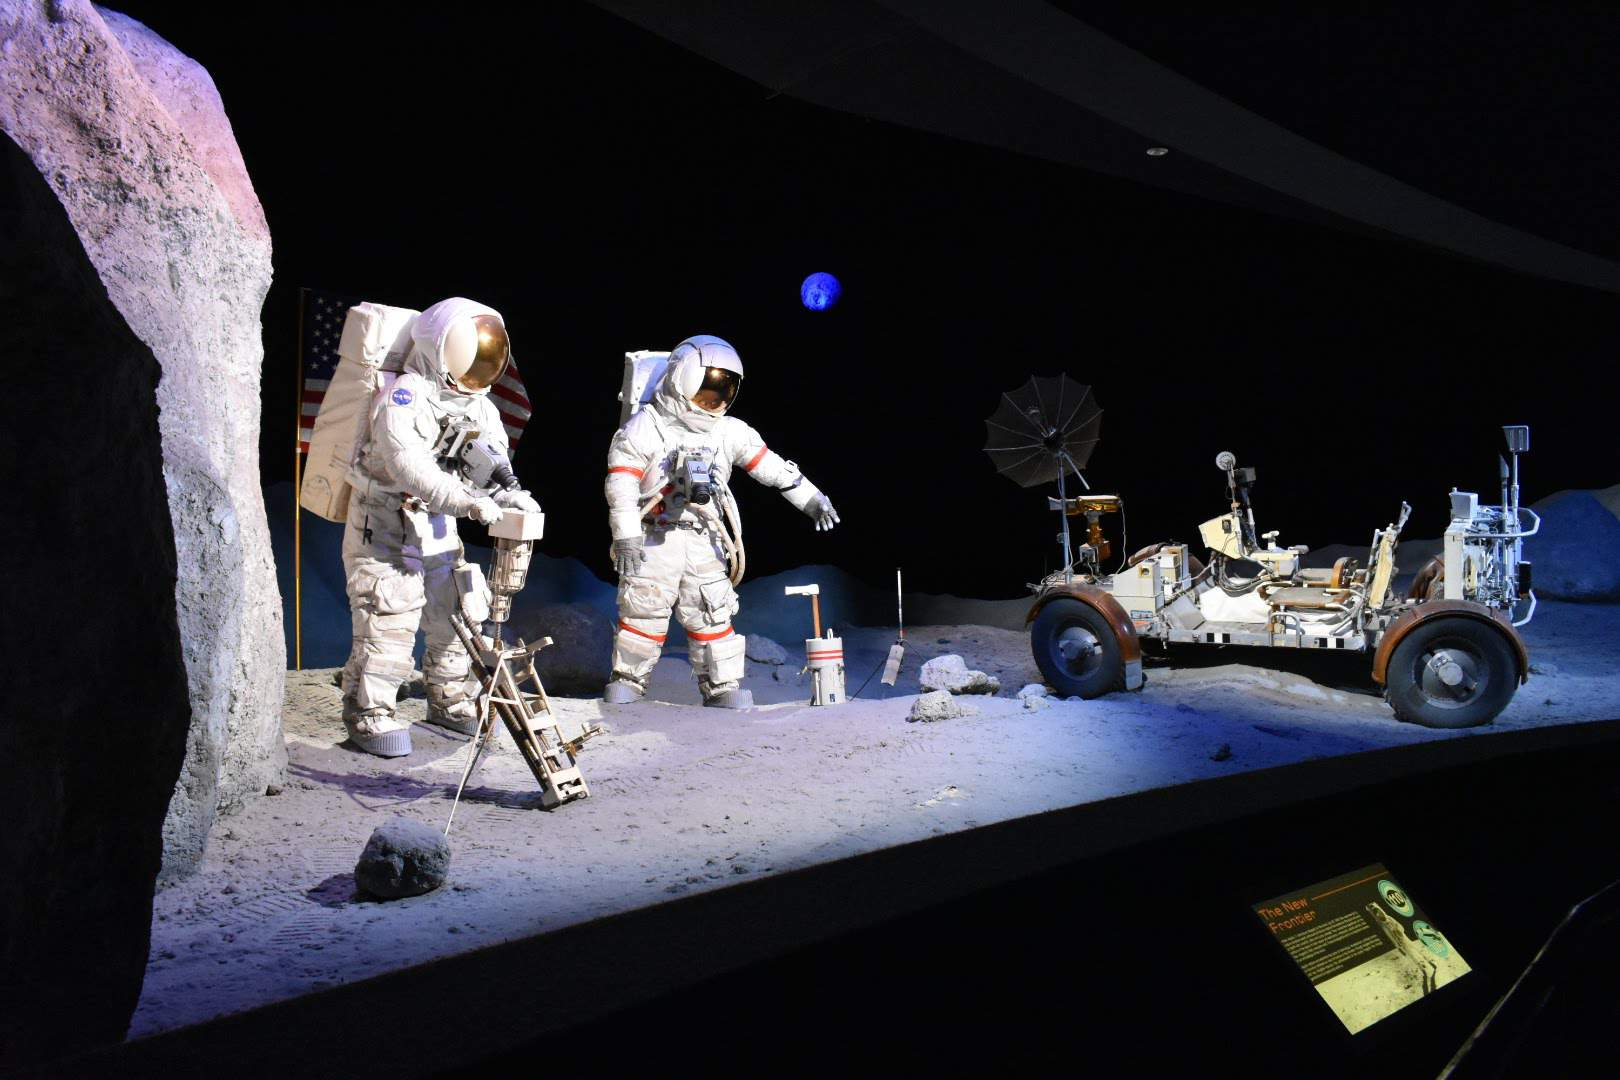 Exhibition of space suits at the space center